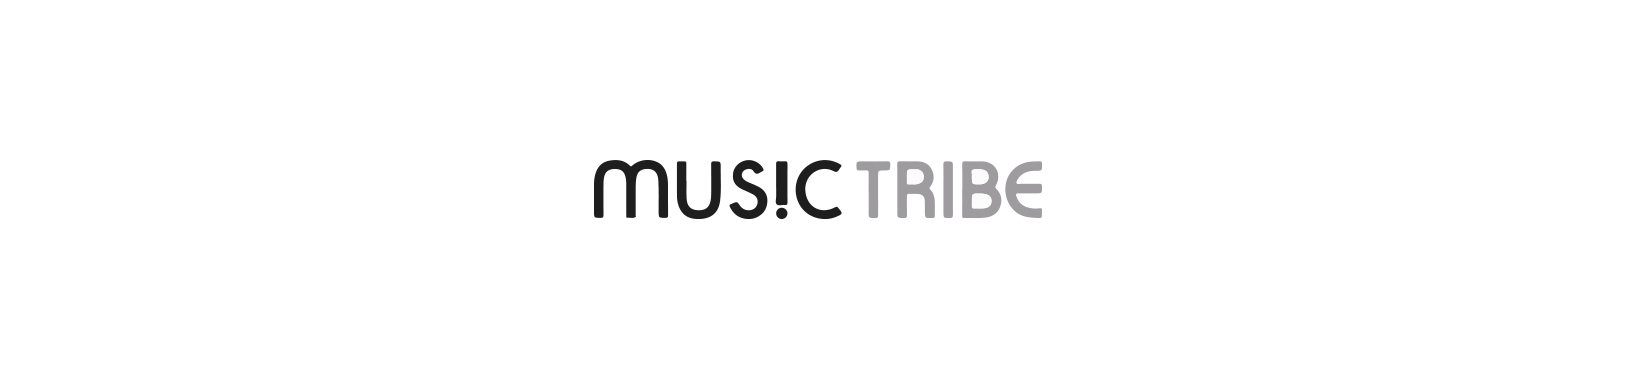 MUSIC TRIBE LOGO.jpg